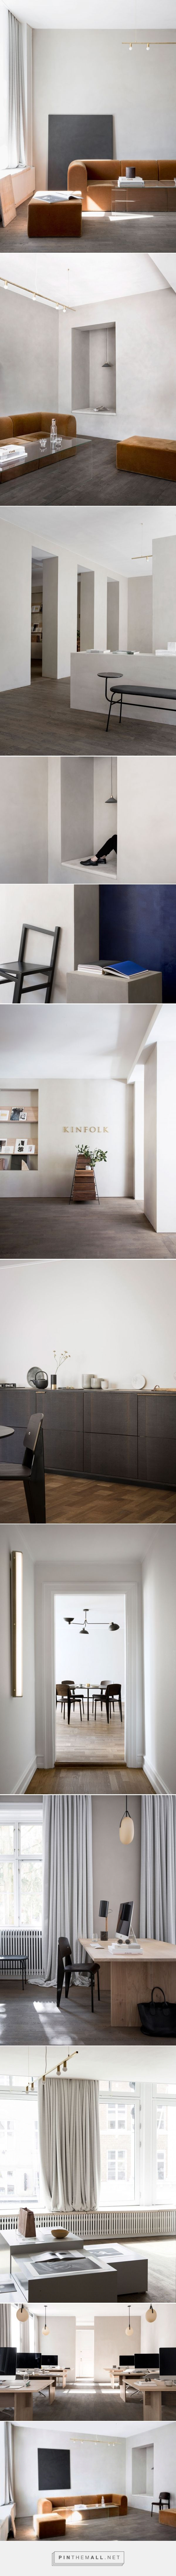 Kinfolk Magazine's Sublime Copenhagen HQ by Norm Architects. - created via https://pinthemall.net